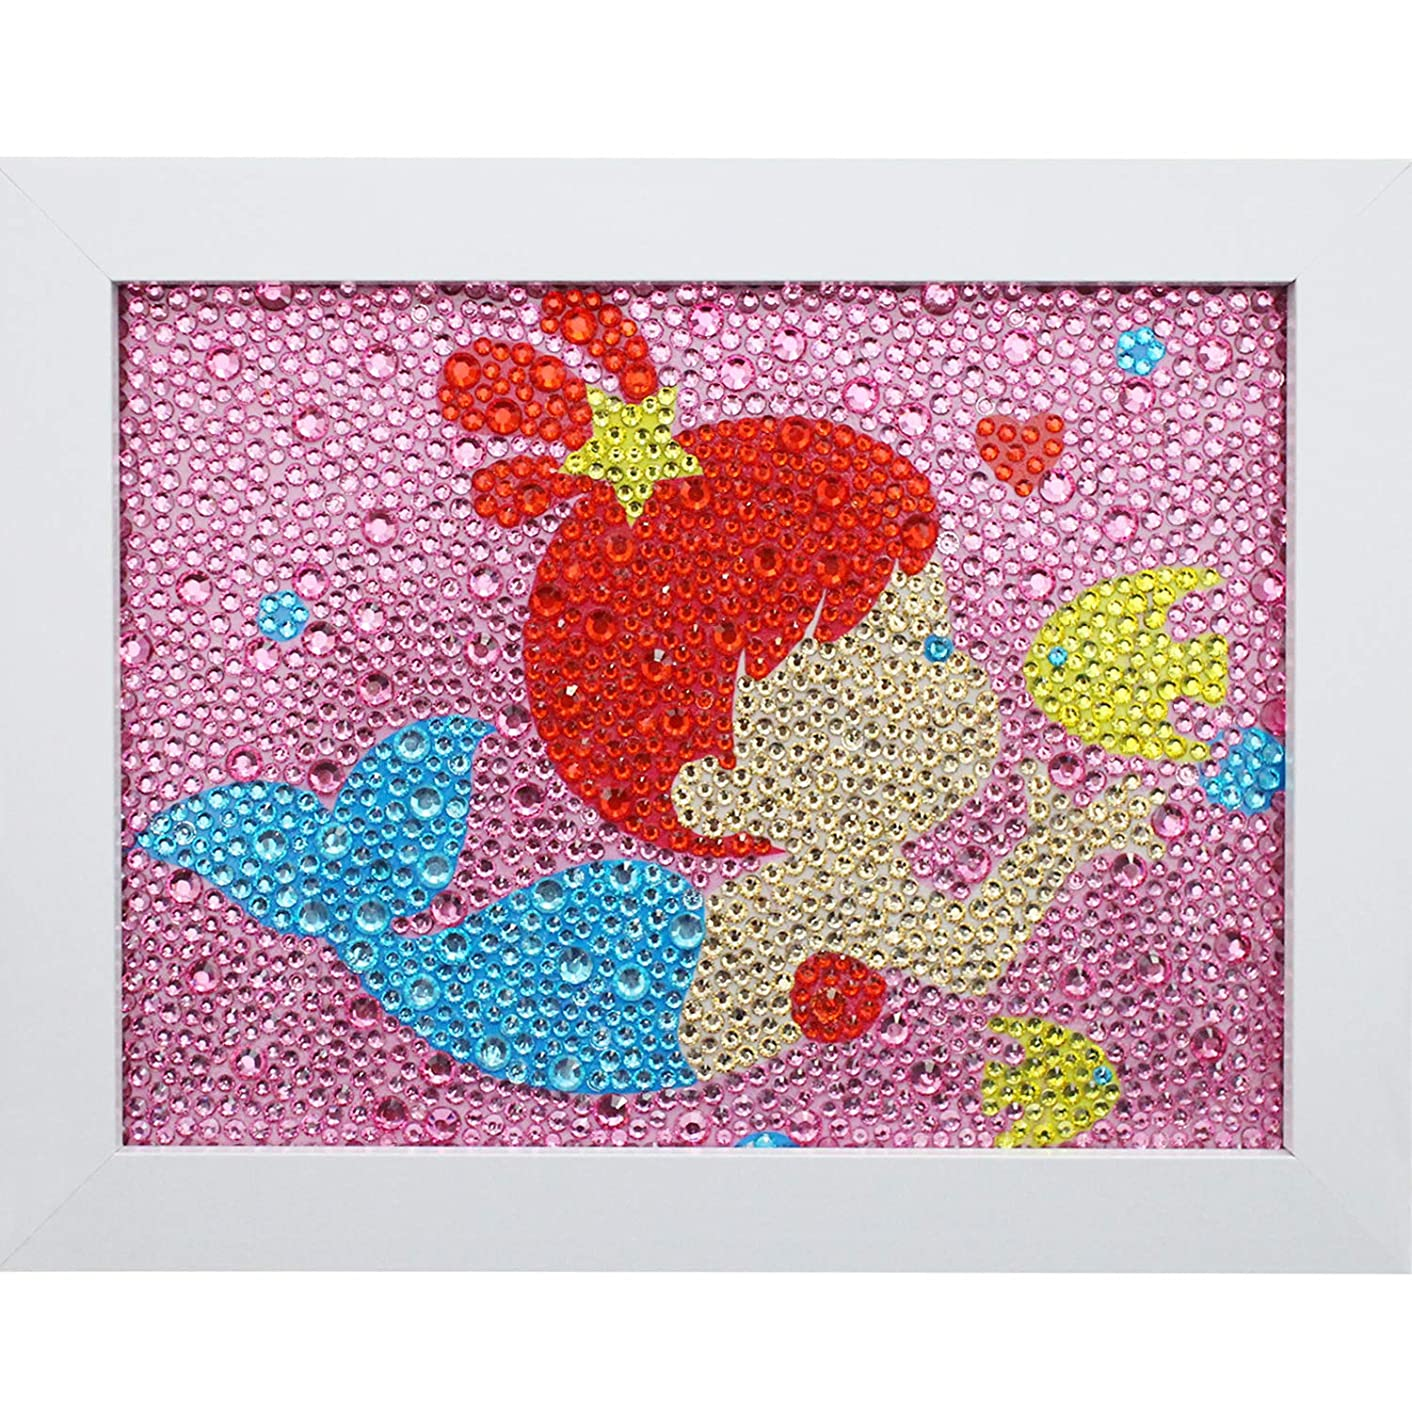 Bestlus DIY Kids Diamond Painting by Number Kits Arts and Crafts Kits for Children (Mermaid, 15x20cm)